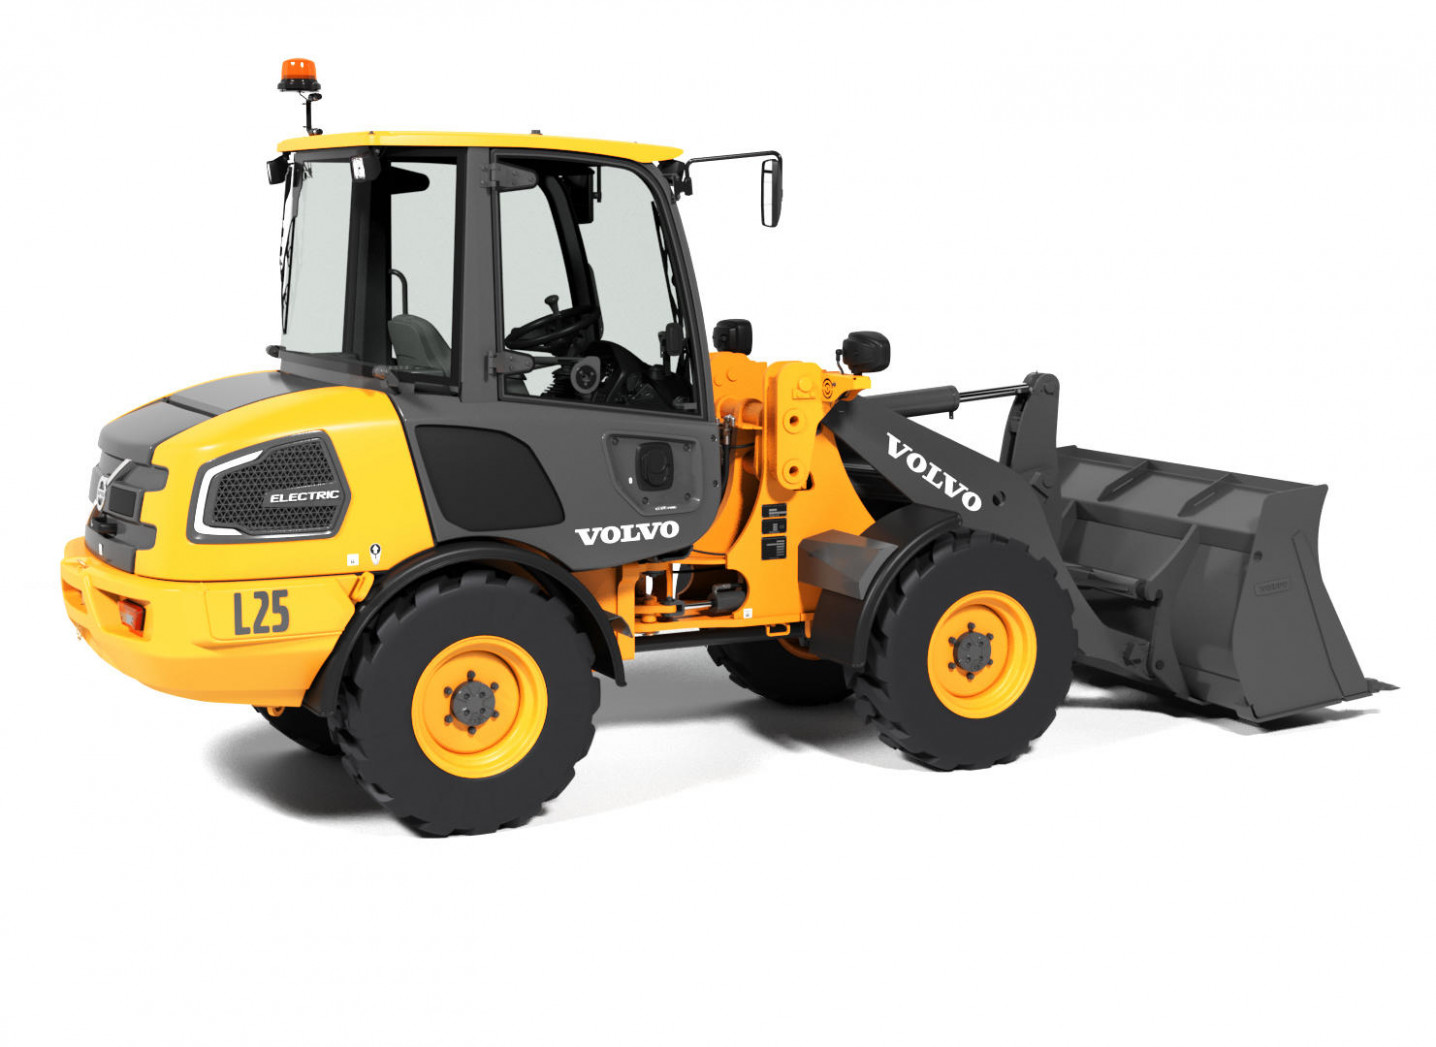 Volvo Unveils Electric Compact Excavator at Bauma | Construction ...